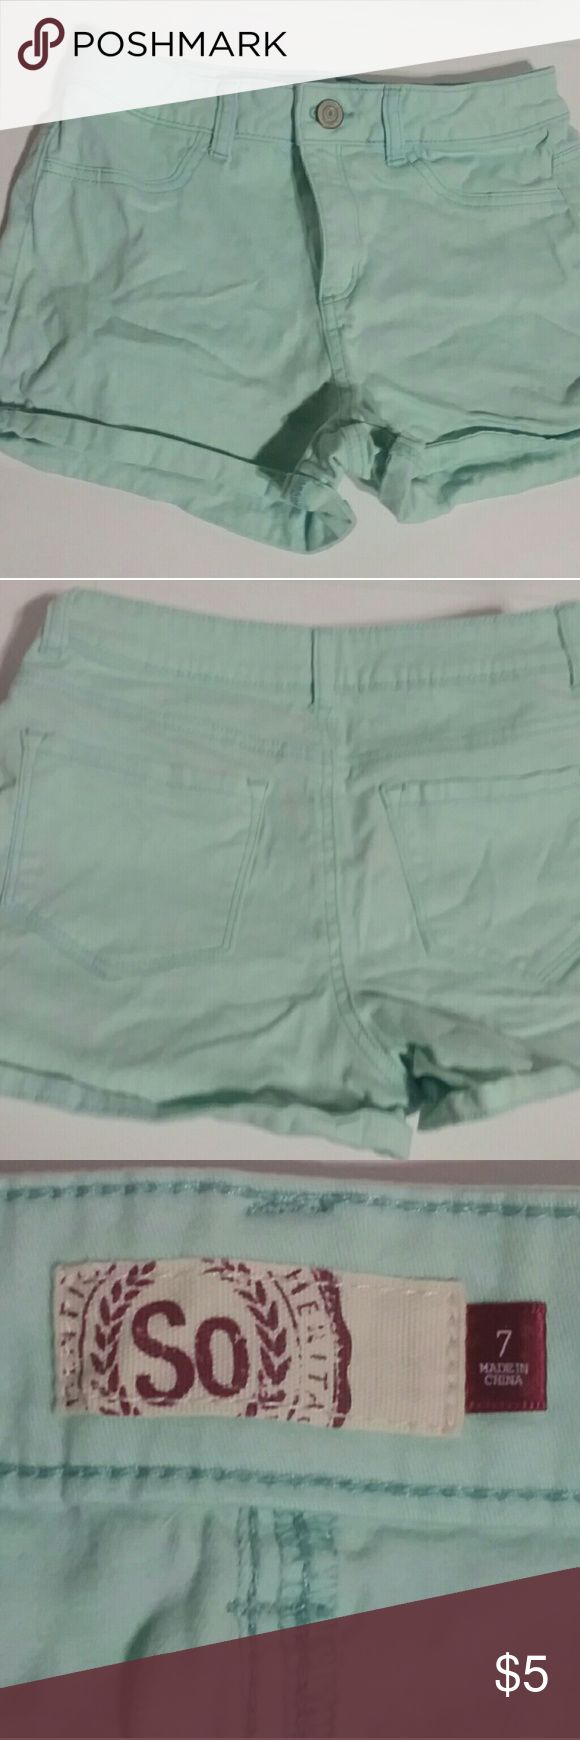 💚So girls juniors shorts💙 😍Cute So American heritage Juniors teal shorts😊 Girls size 7 Feel free to ask any questions Thank you!💜 So Shorts Jean Shorts